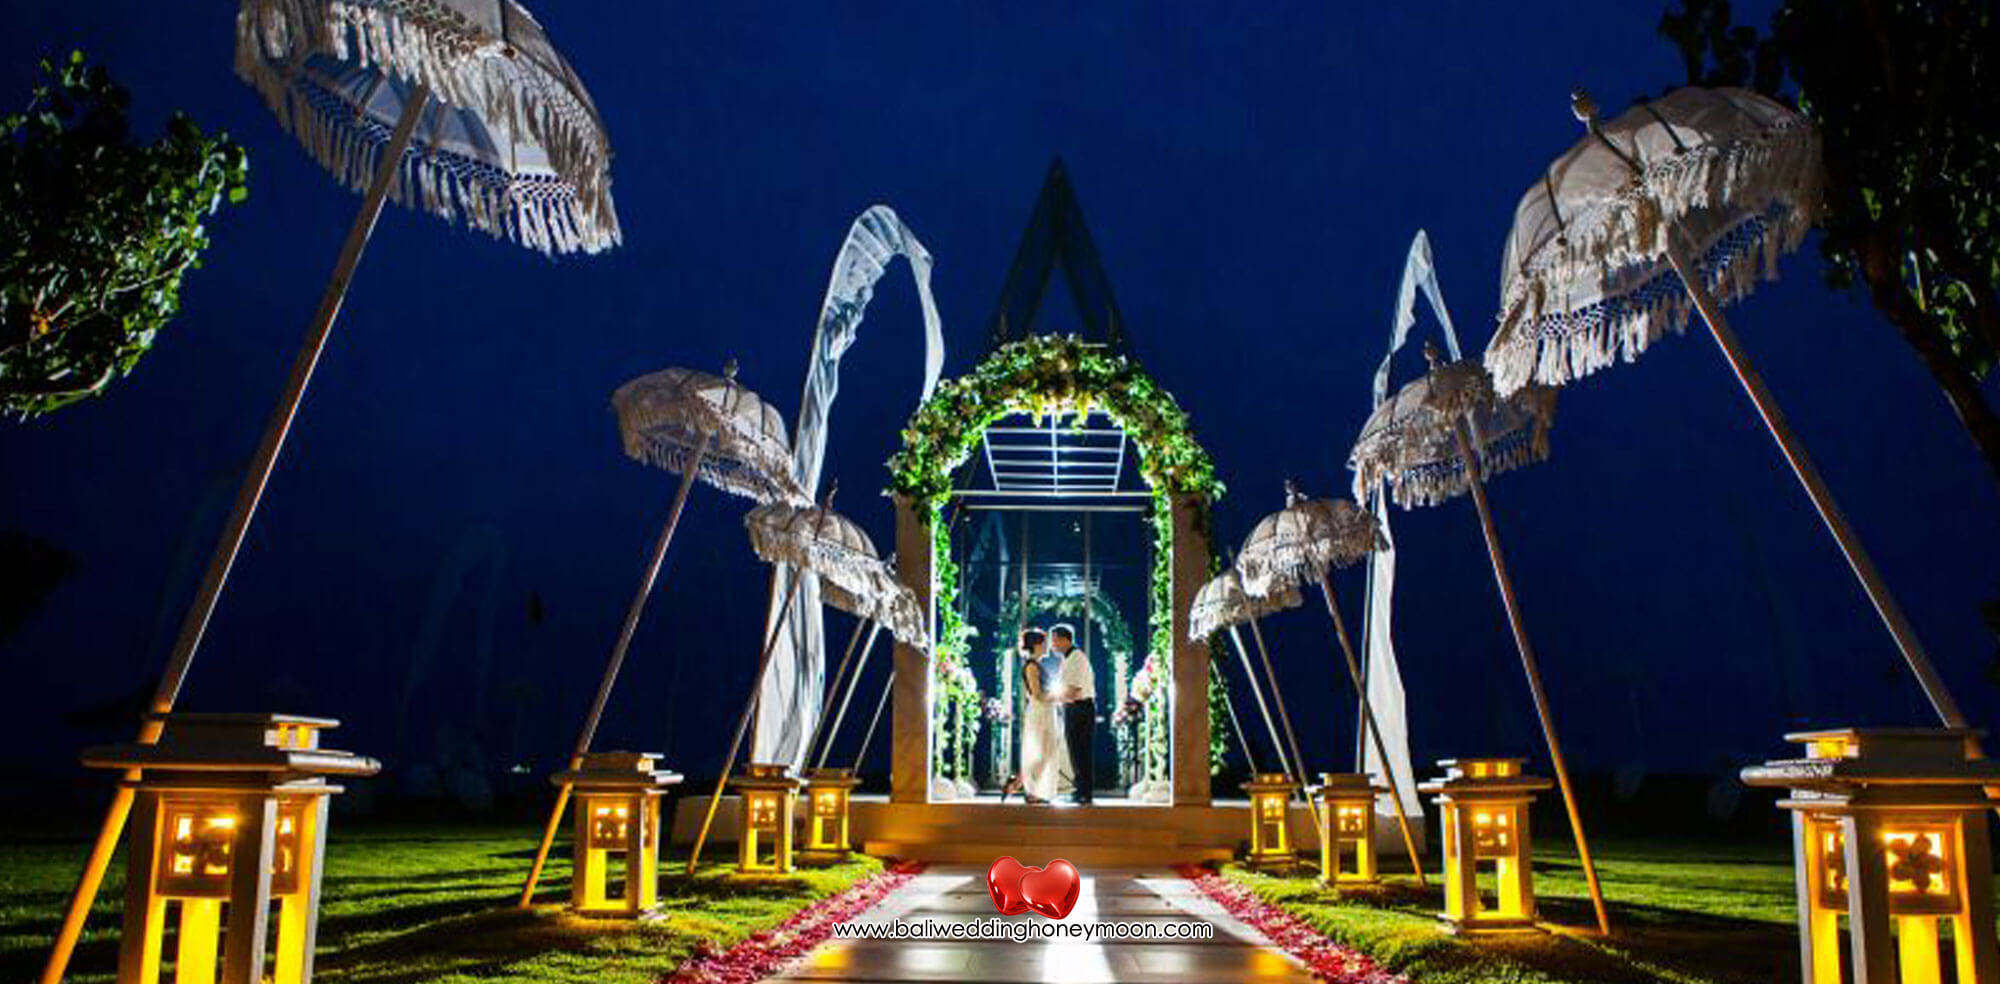 balichapelwedding-baliweddinghoneymoon-grandmiragechapelweddingbali (4)